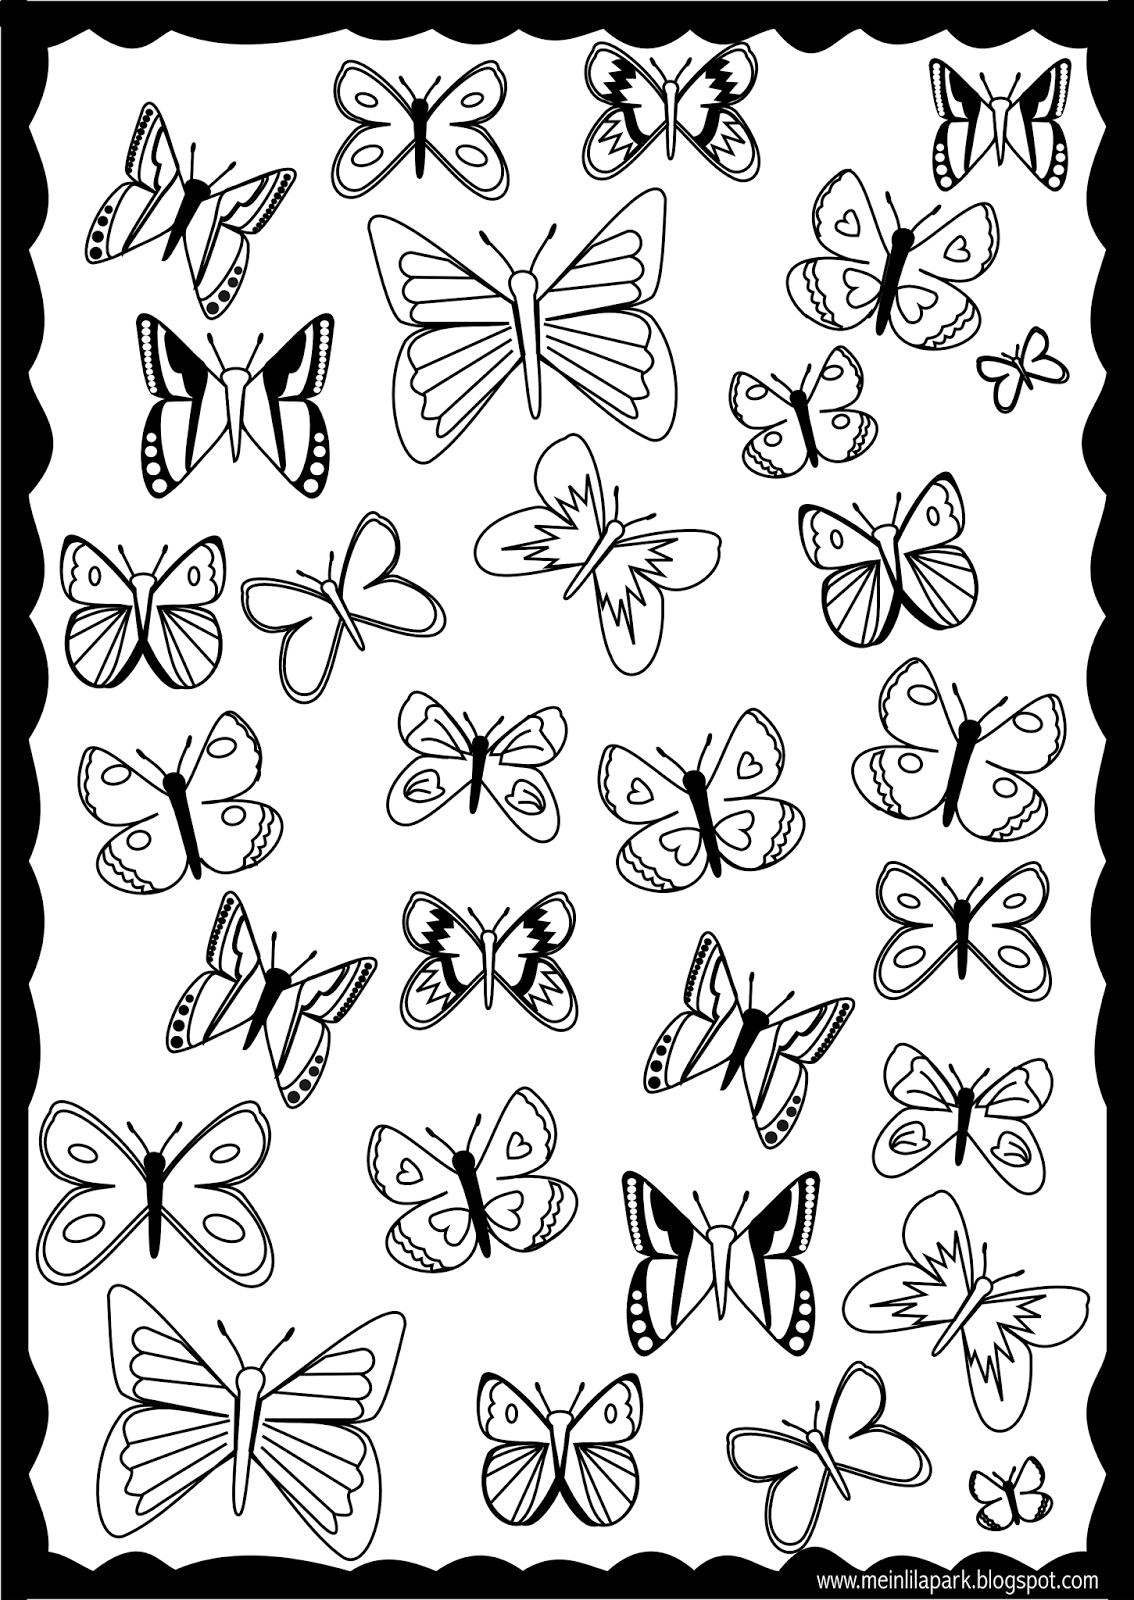 butterfly coloring pages free printable free printable butterfly coloring pages for kids free pages coloring butterfly printable